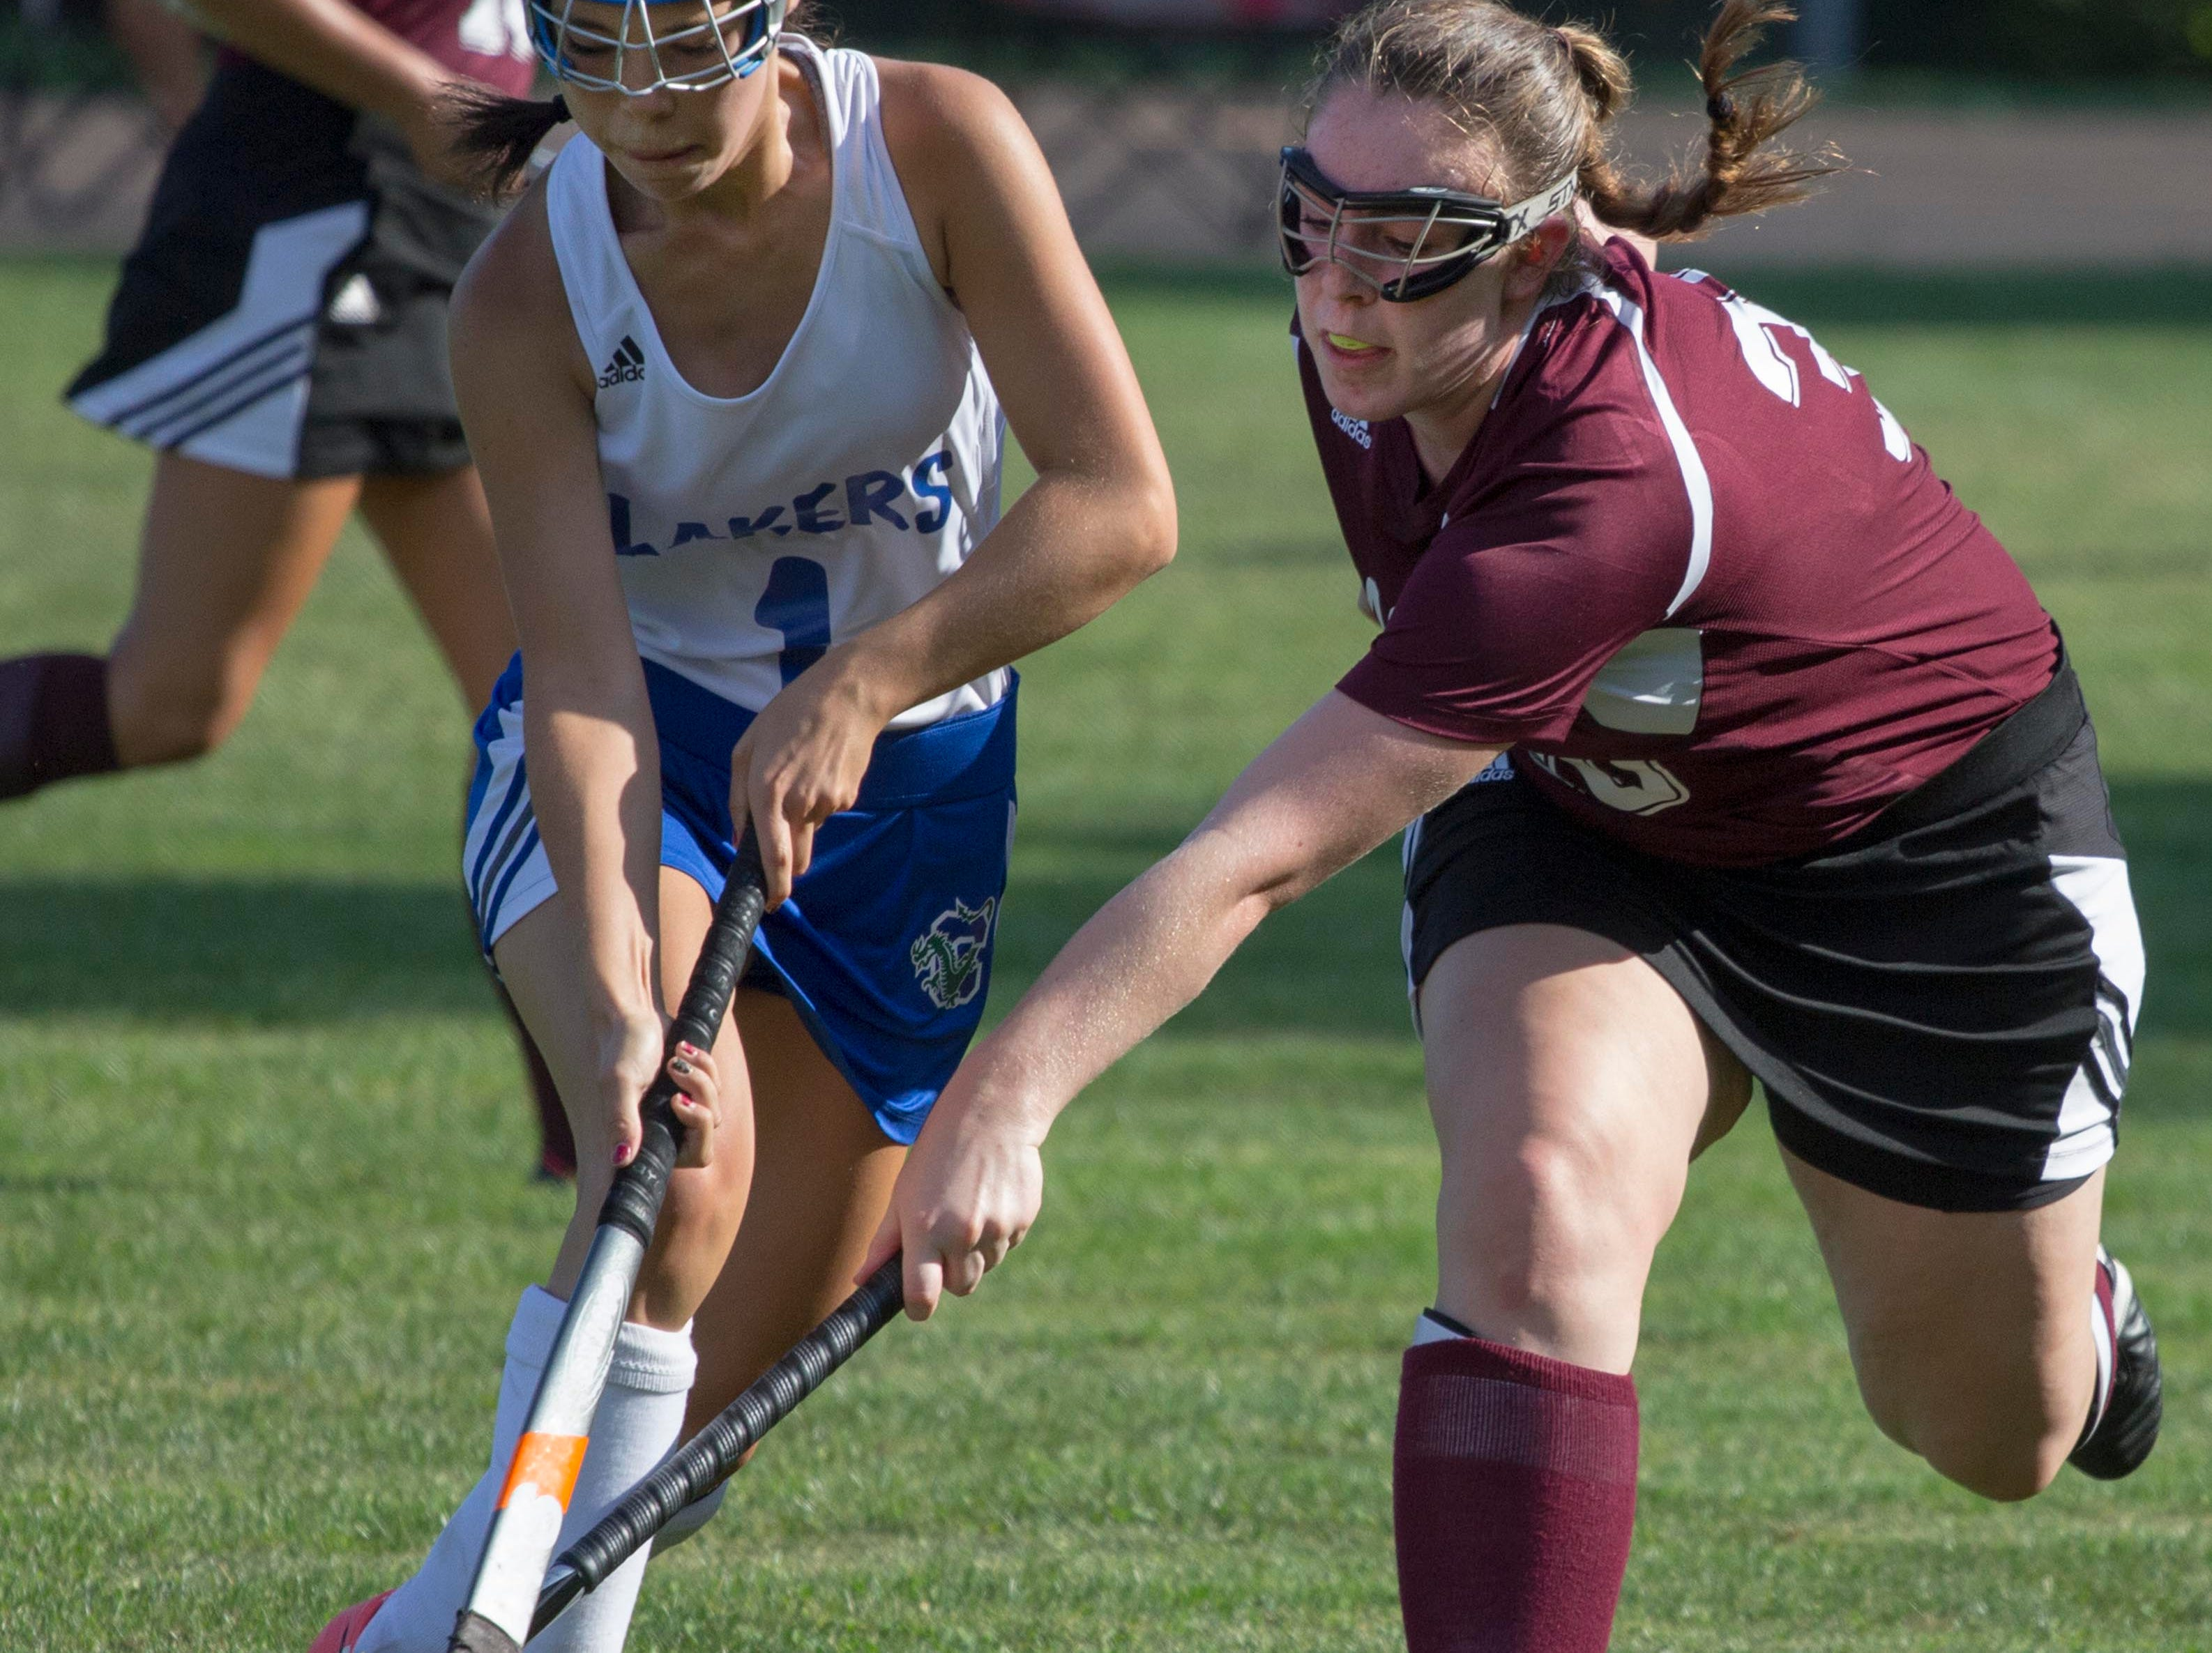 Mt. Abraham's Ellie Gevry, right, reaches in for the ball against Colchester's Erin Horton, left, during field hockey action at Colchester High School on Tuesday.